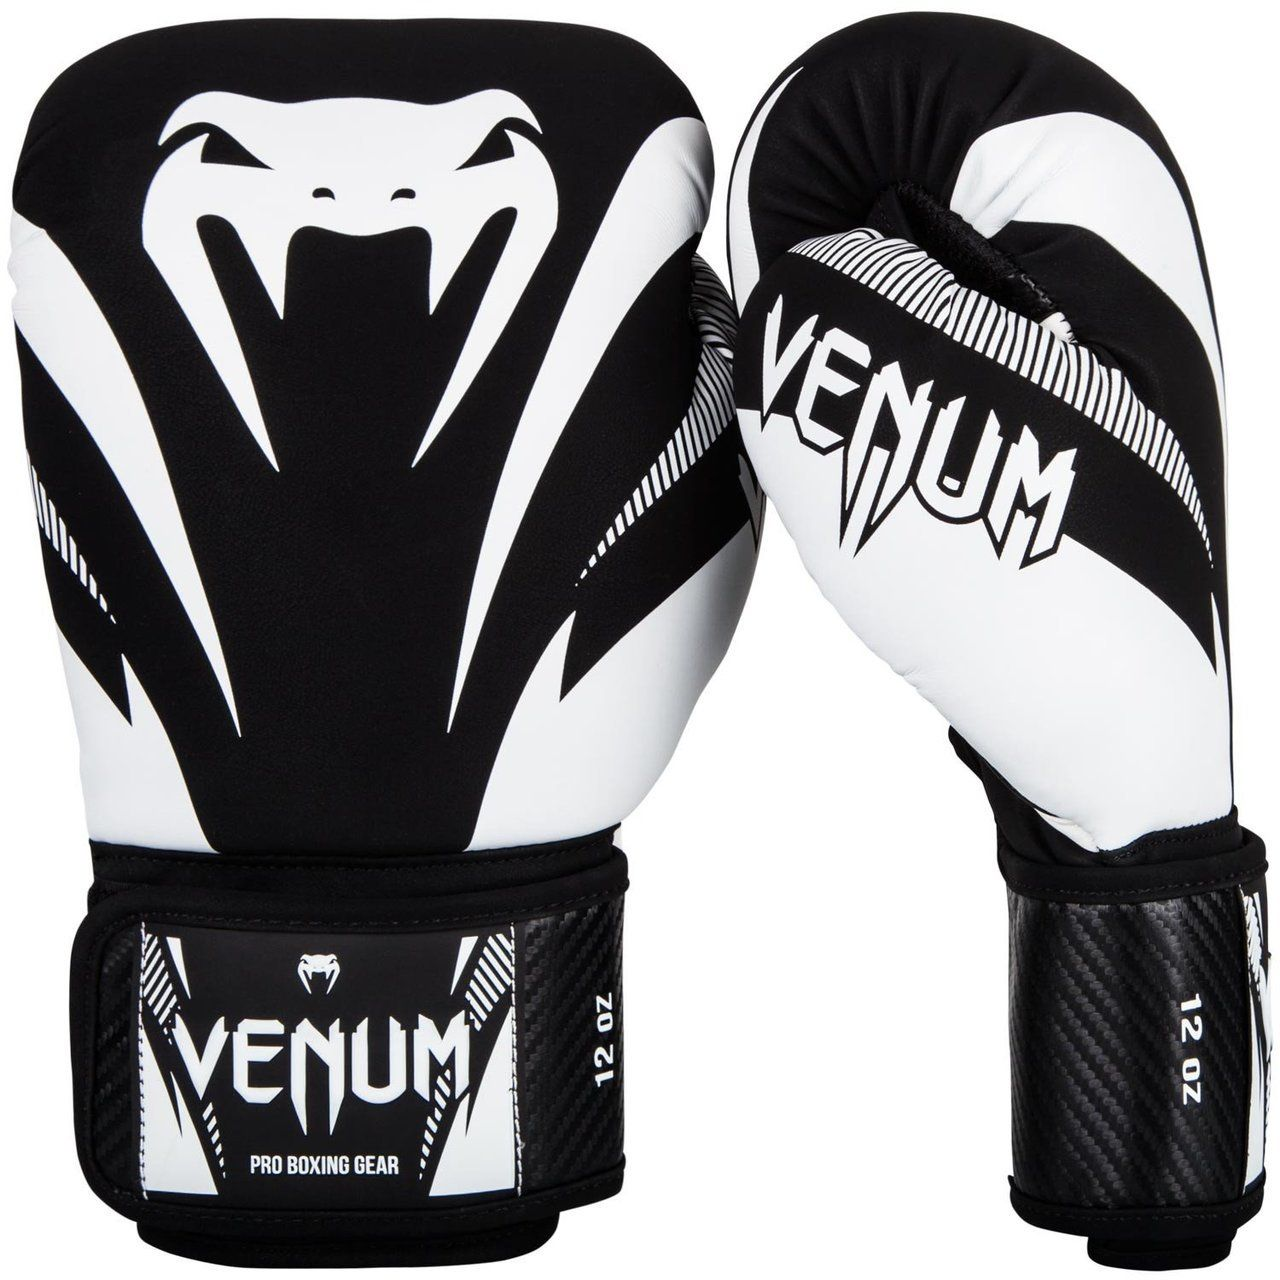 Venum Impact Boxing Gloves (Black/White) Boxing gloves